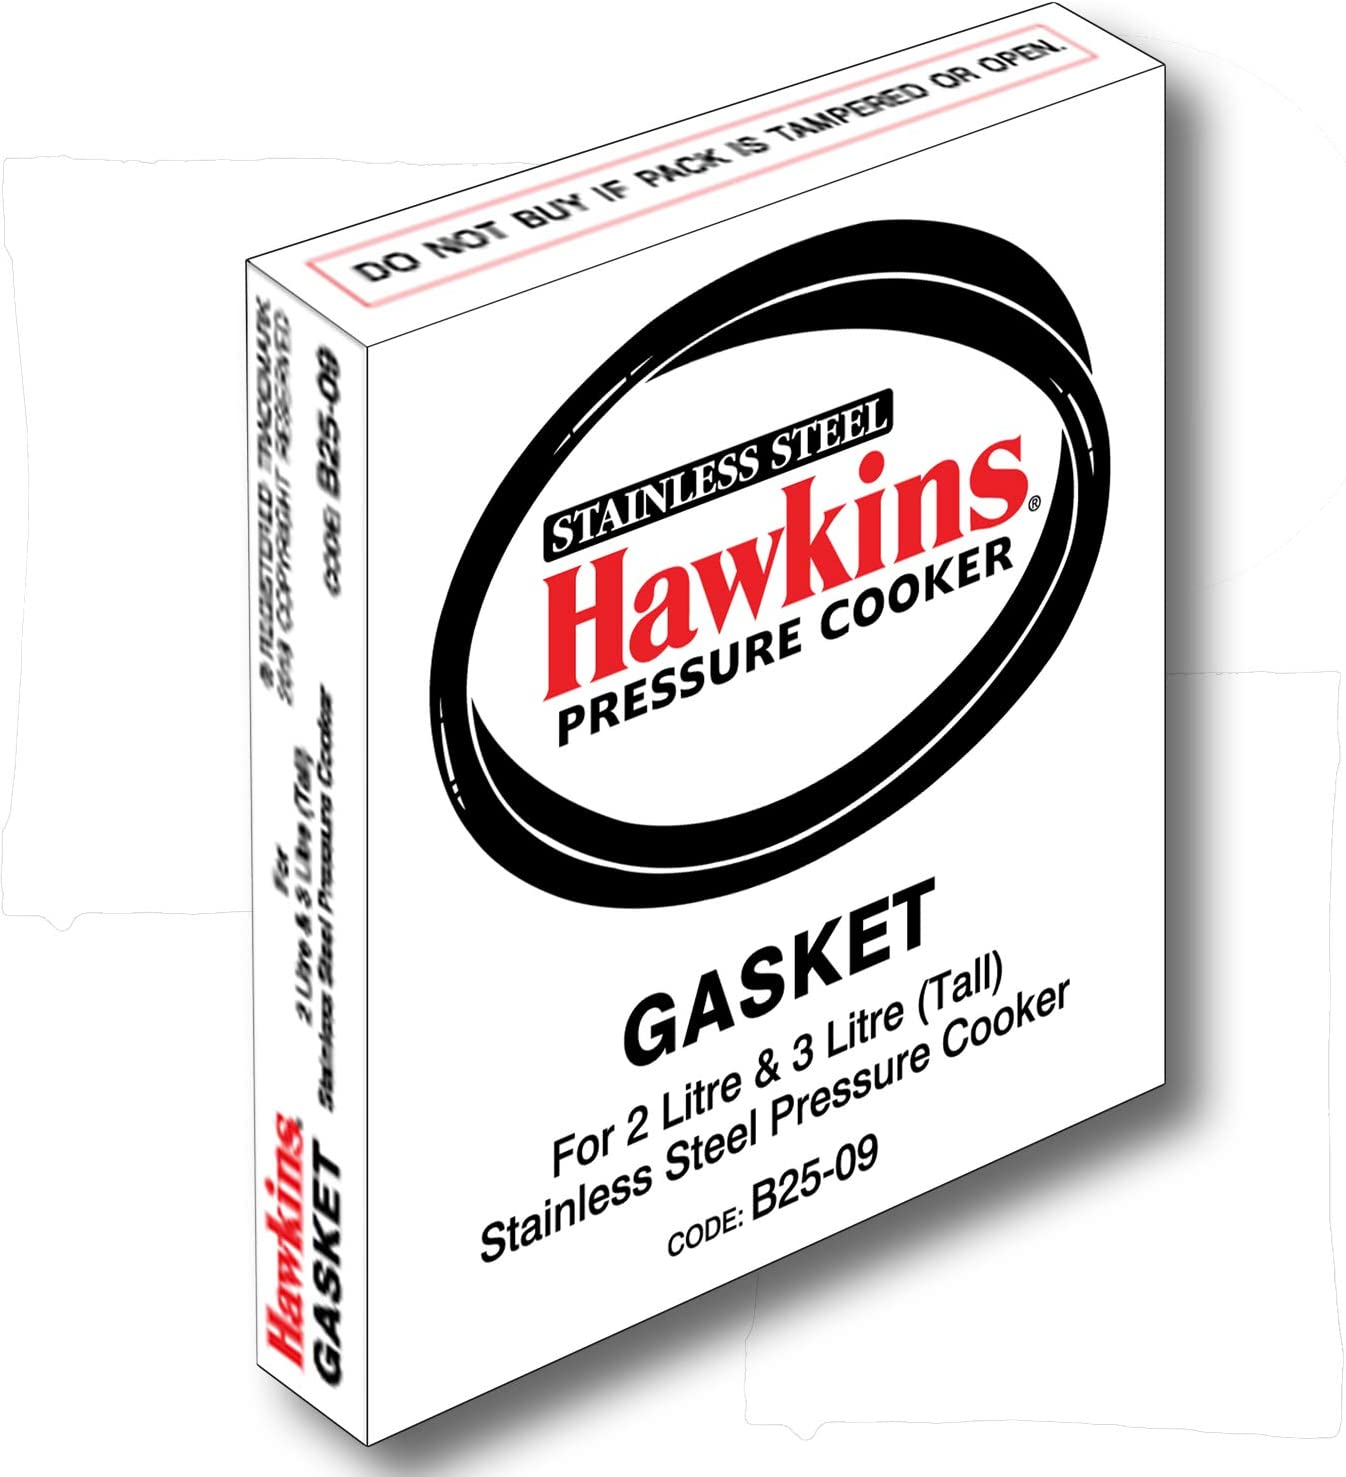 Hawkins Stainless Steel B25-09 Gasket for 2 and 3 Litre Pressure Cookers Sealing Ring, Small, Black used to Keep the Appliance Airtight, to Build Pressure, Made from Materials